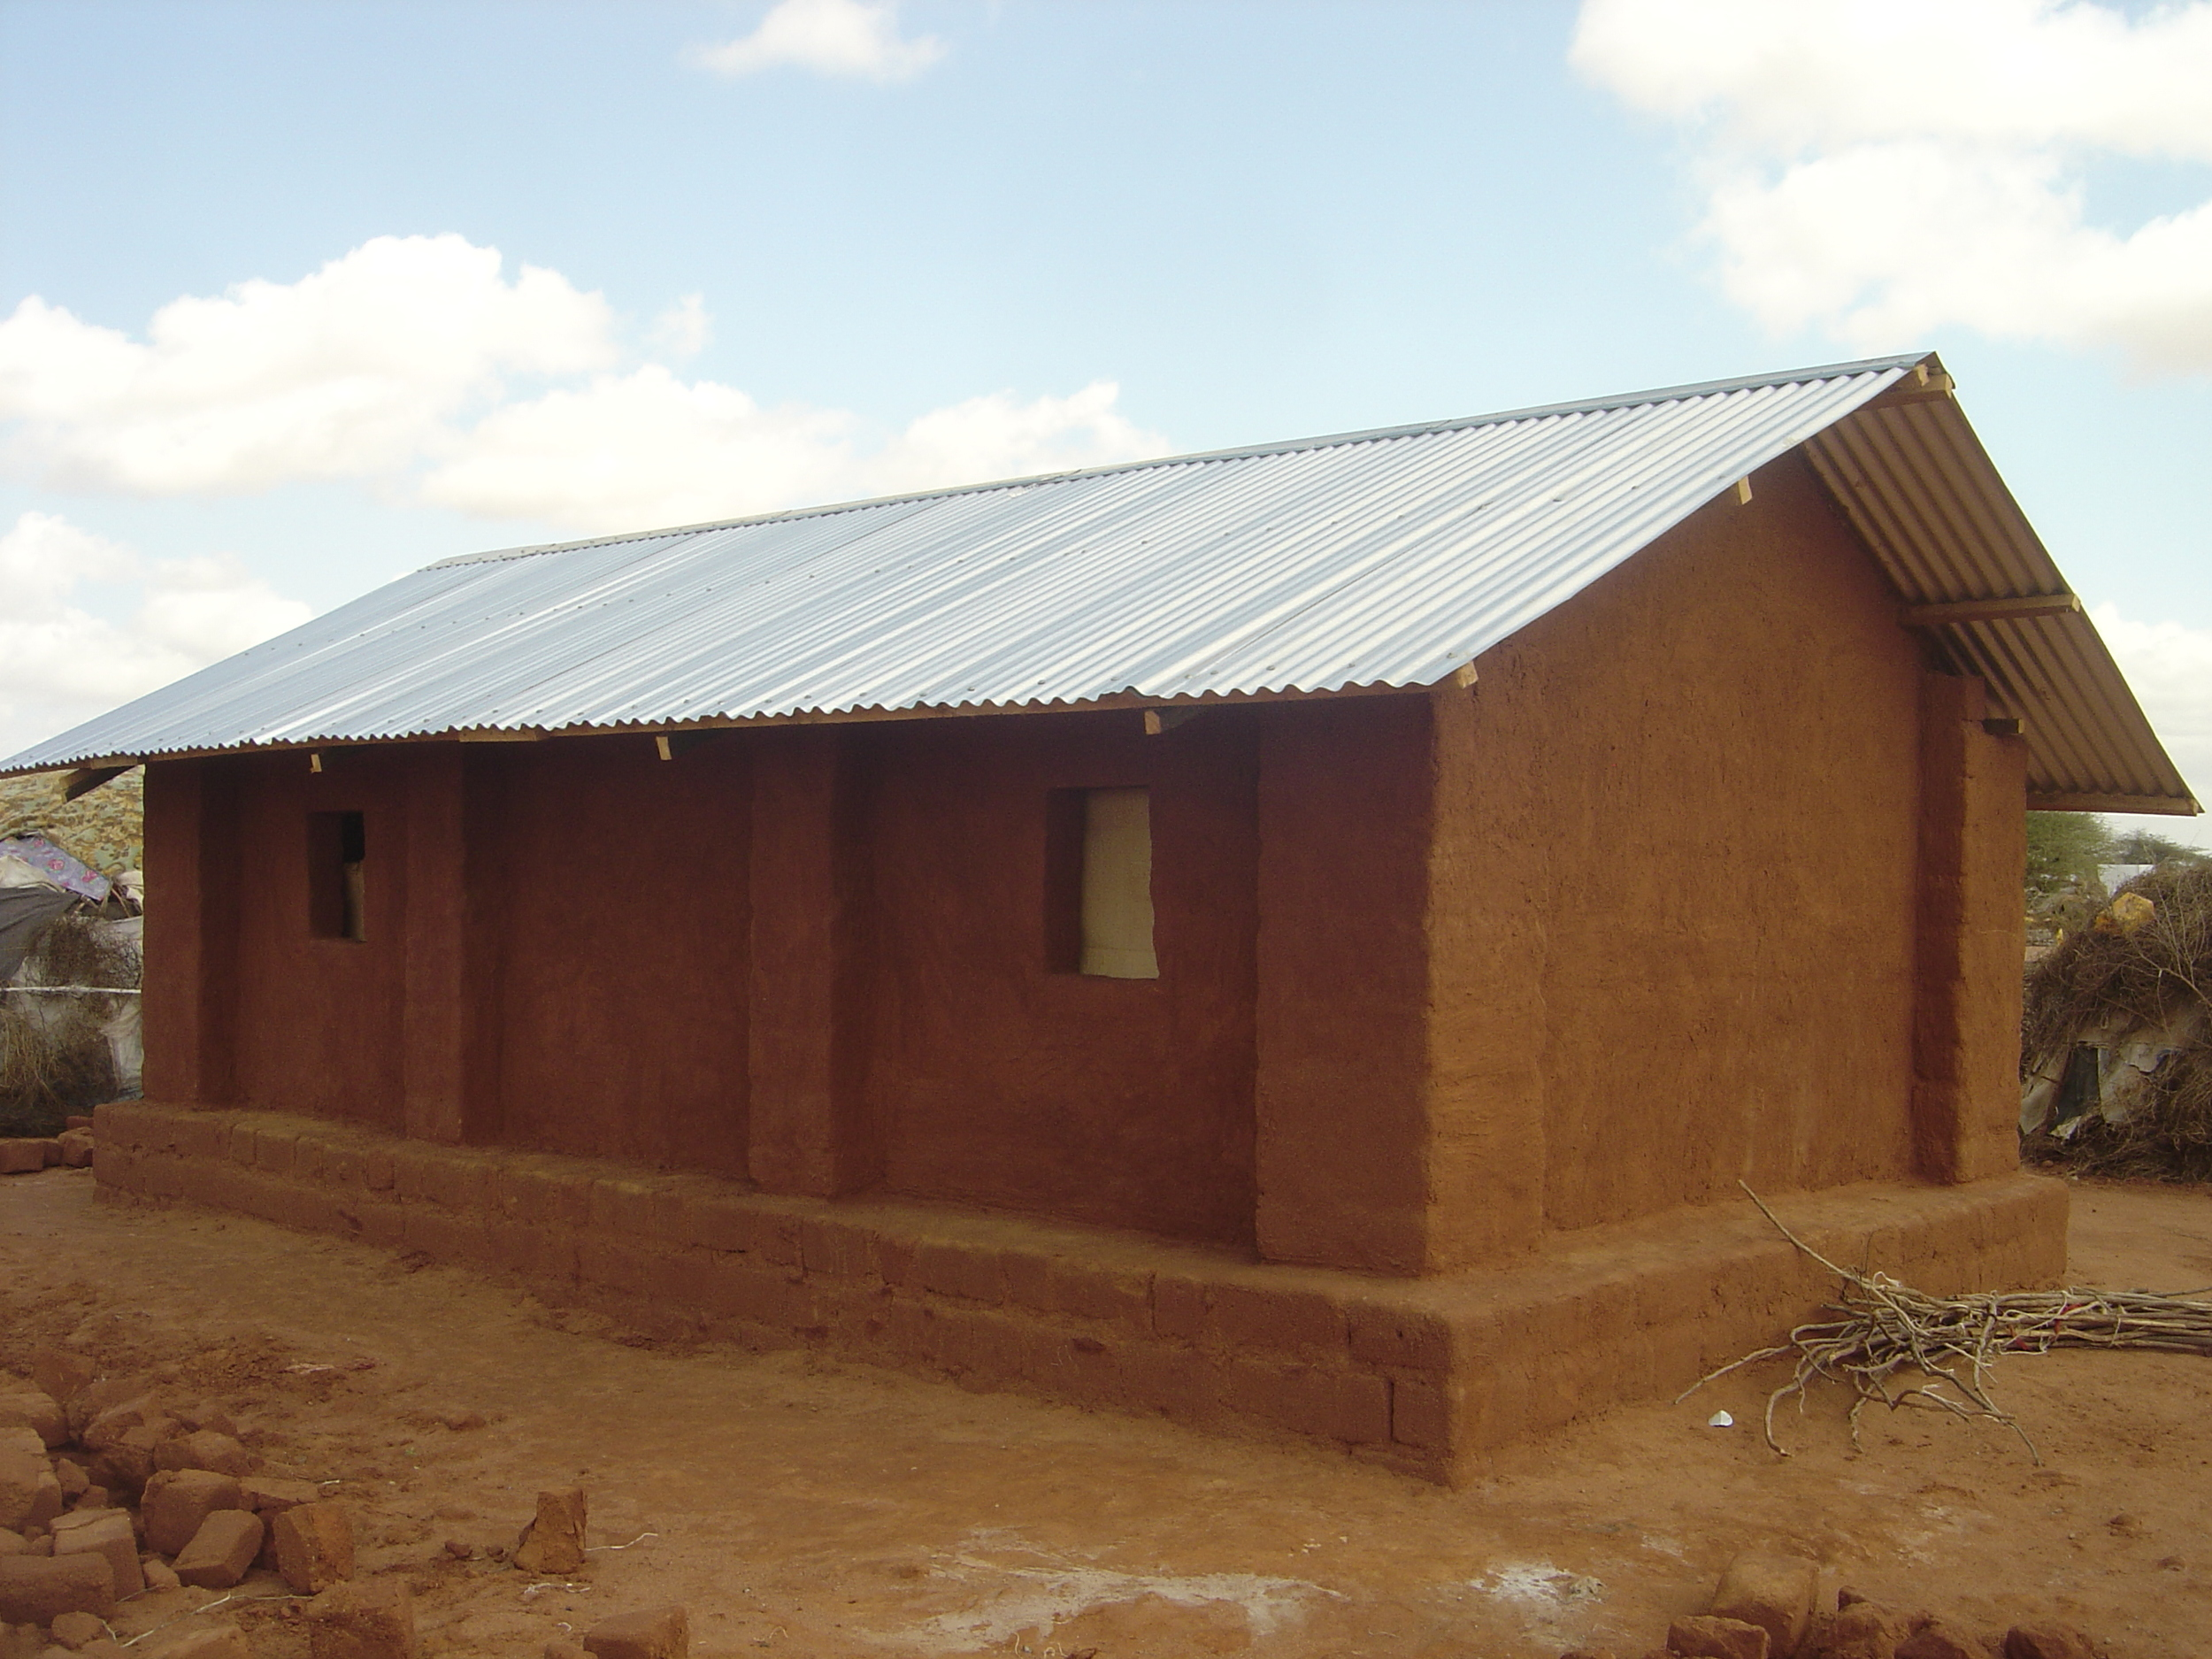 Transitional shelter co-design output using local knowledge and assets. 2007